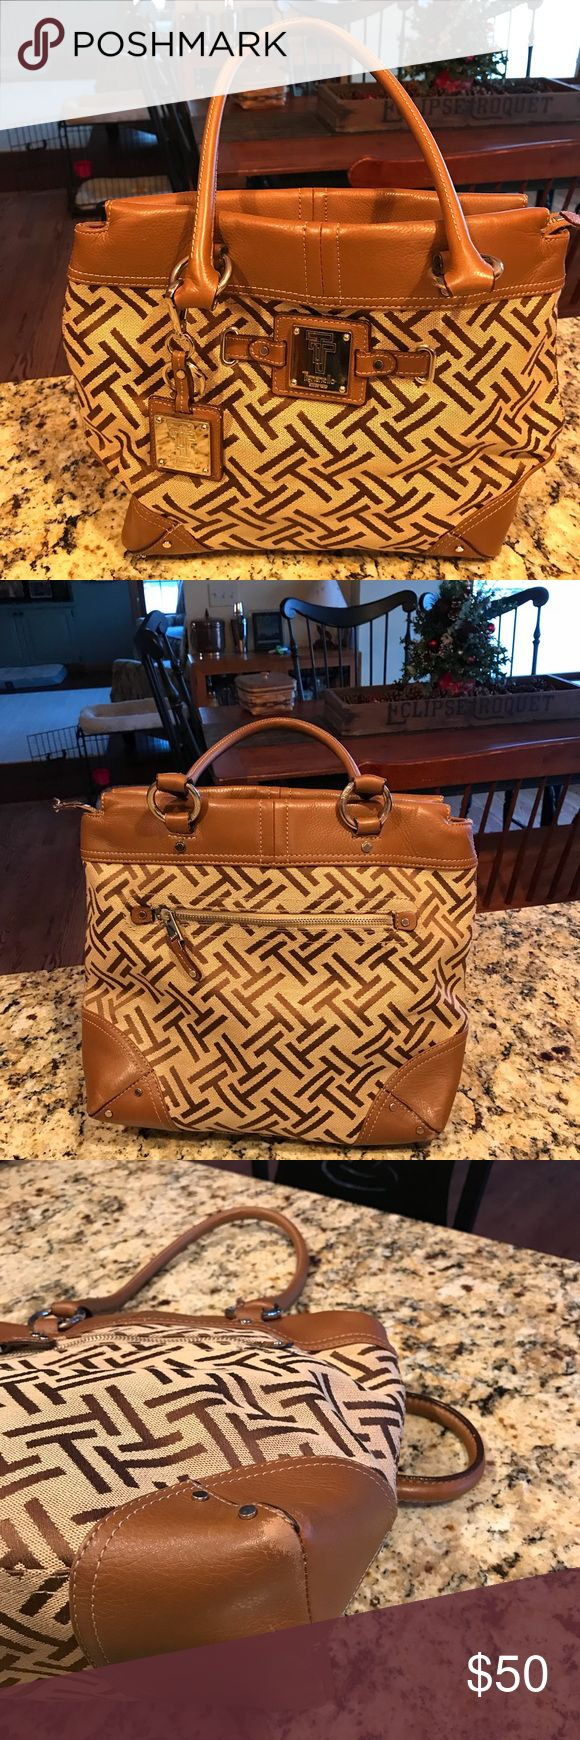 Tignanello Handbag Large fabric handbag with leather accents. Very good condition. Wear shown on picture. Great size, comfy to wear bag. Tignanello Bags Totes